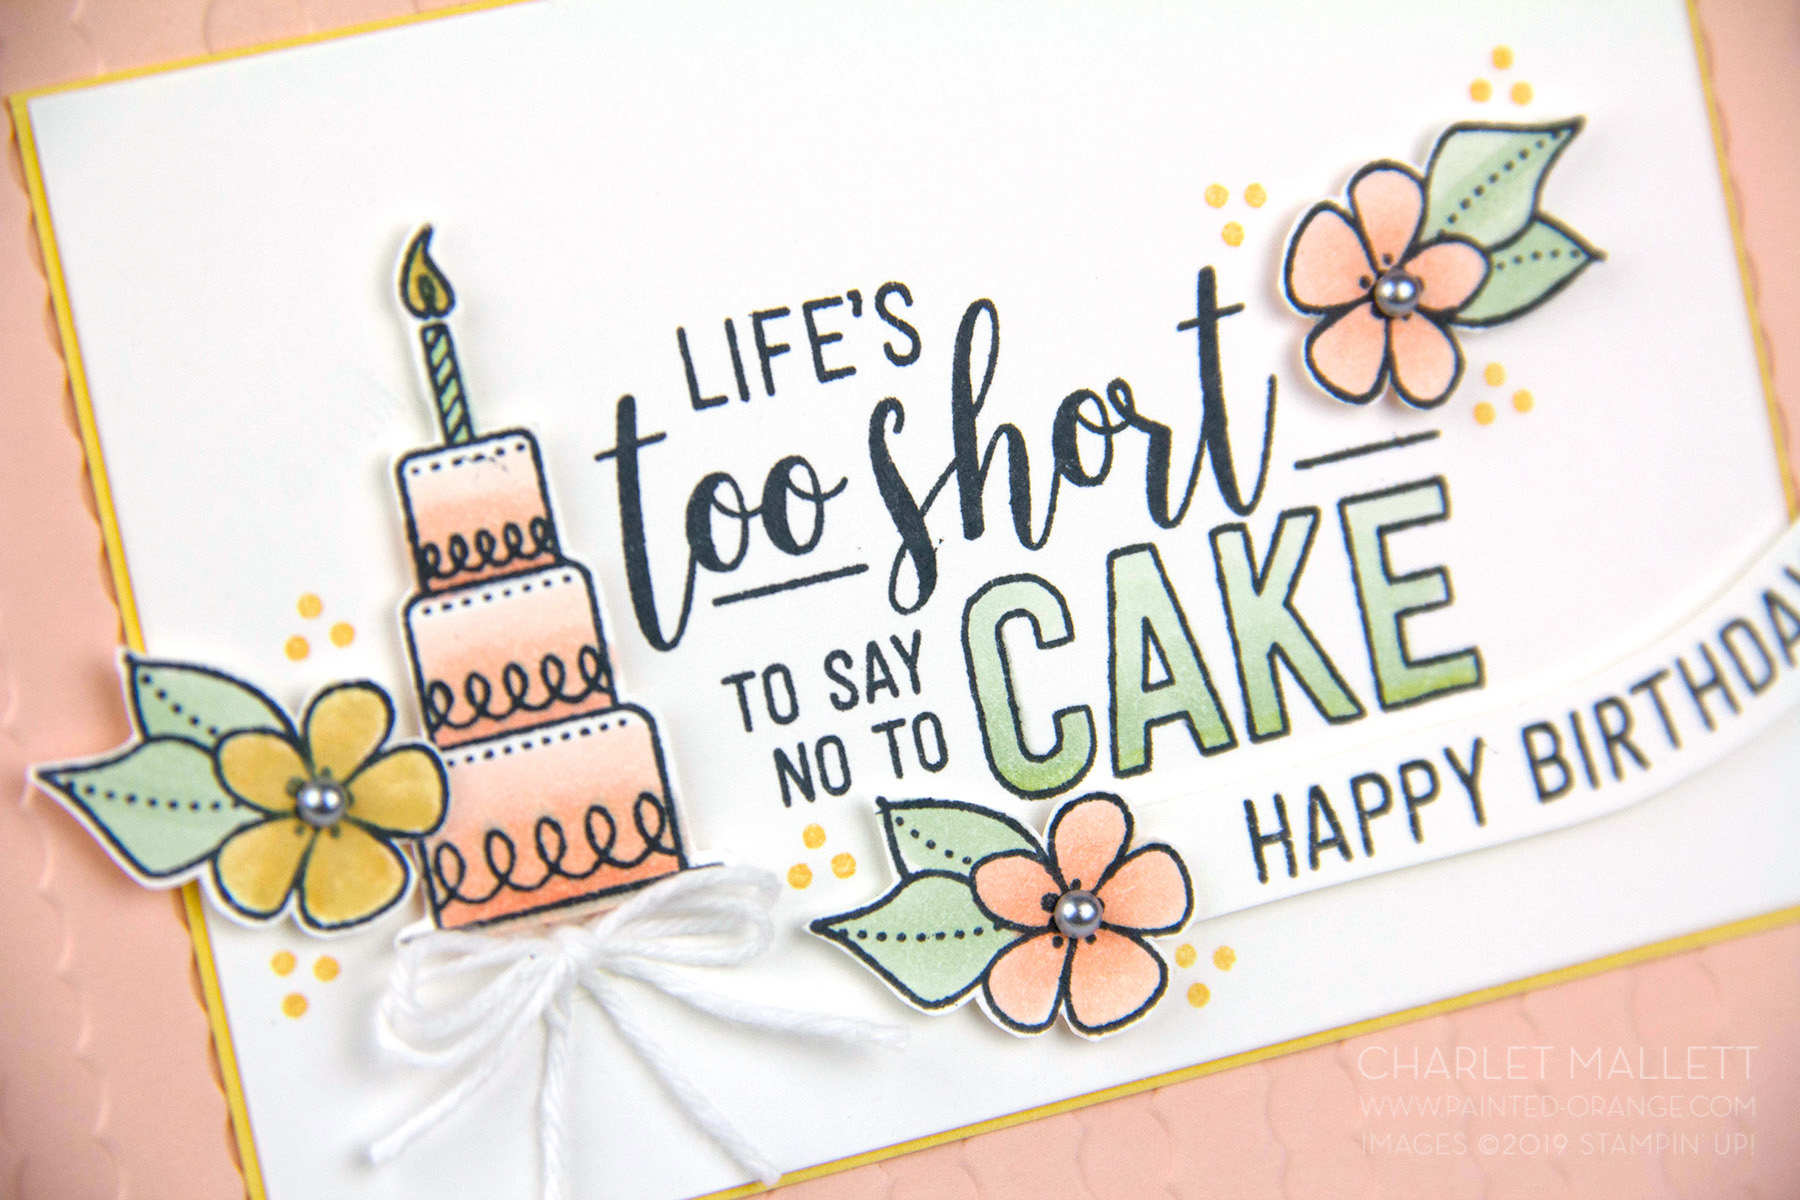 Life's too shirt to say no to cake … Birthday Card using Amazing Life stamp set - Stampin' Up! Charlet Mallett